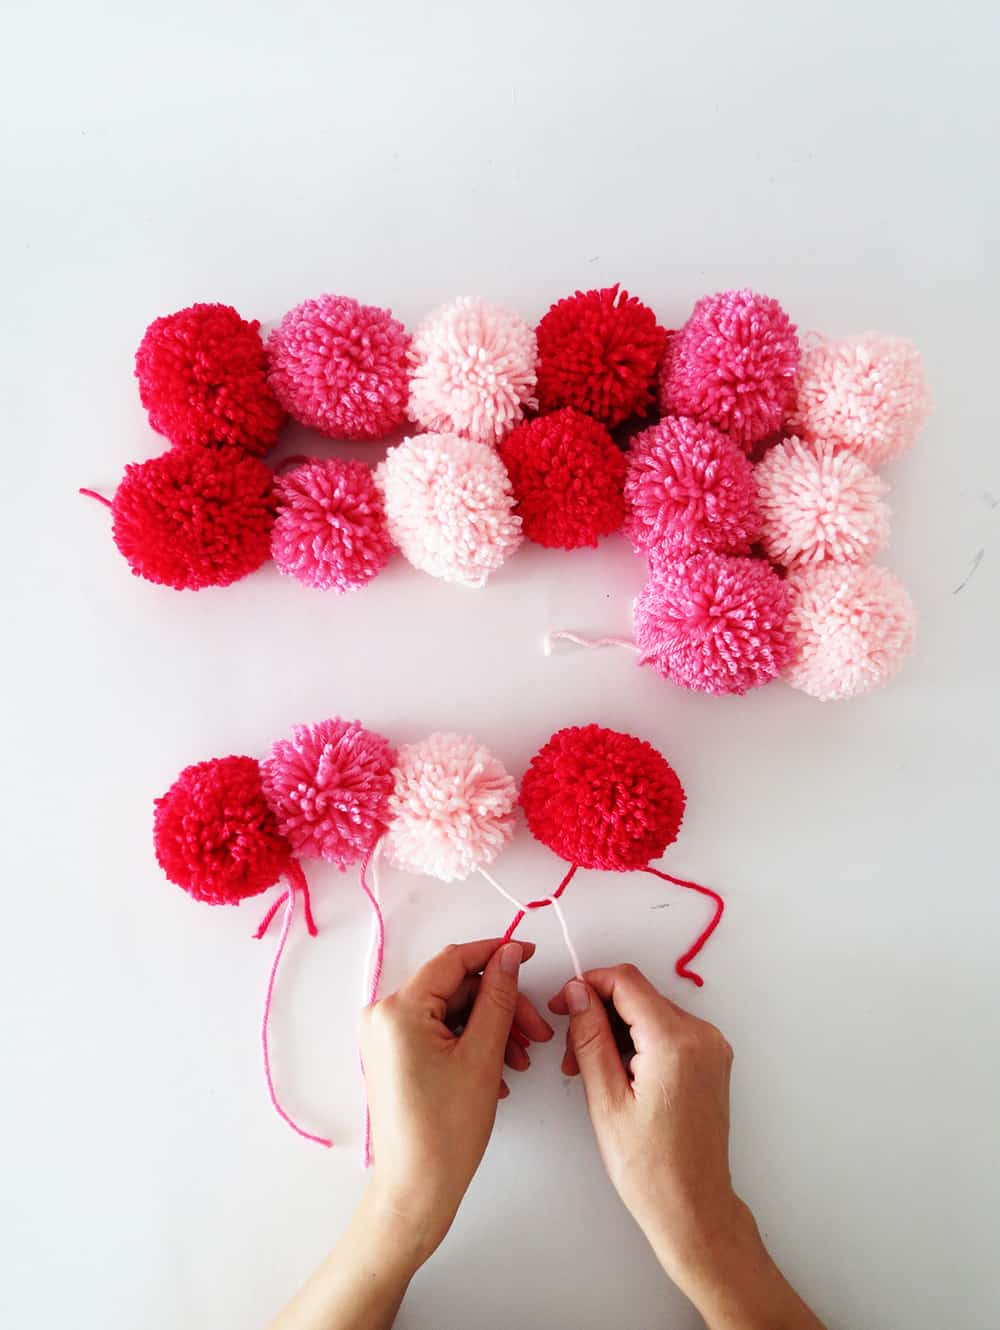 putting the pom poms scarf together